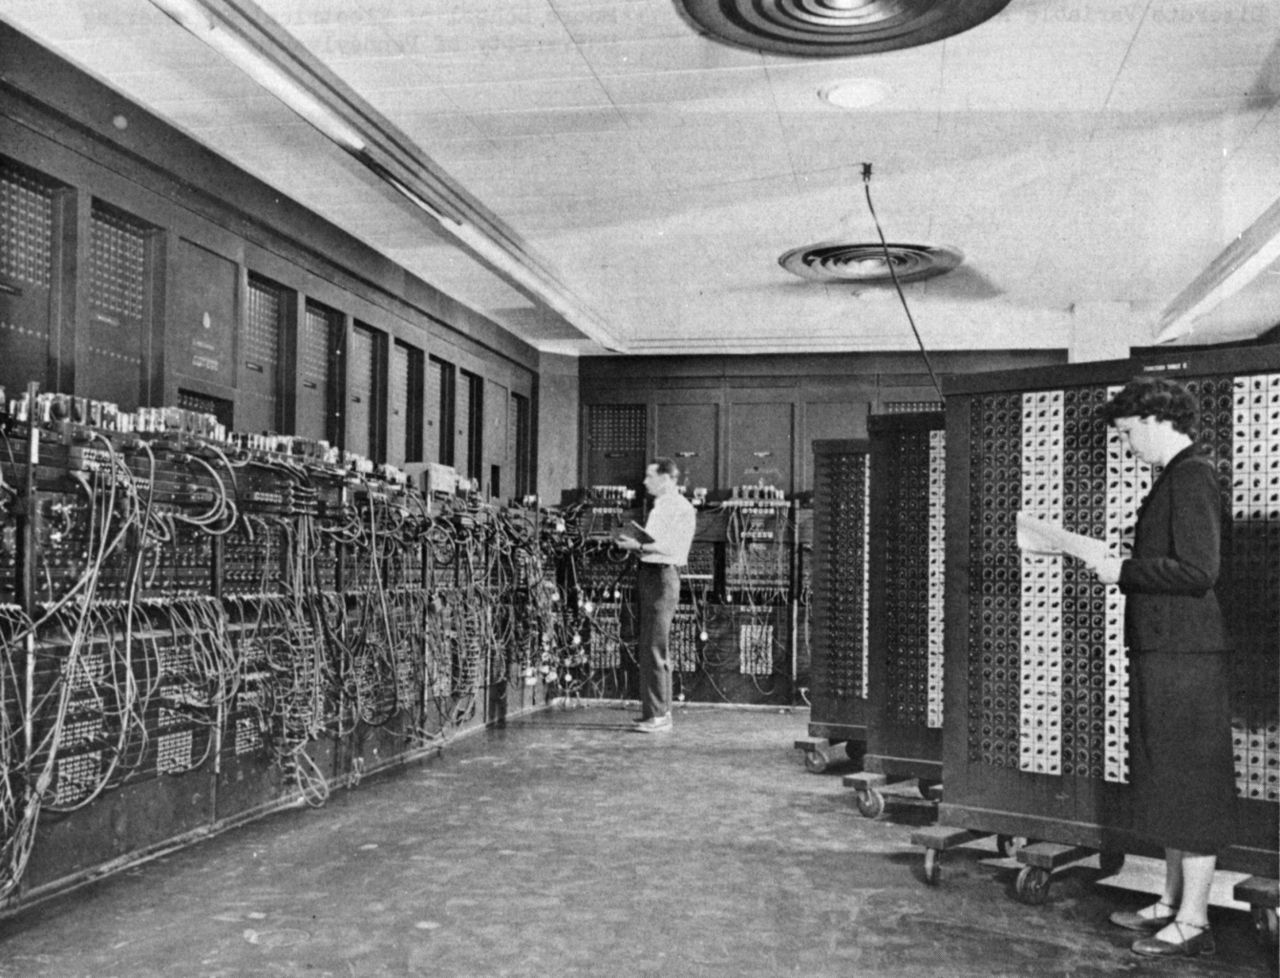 Glen Beck (background) and Betty Snyder (foreground) program ENIAC in BRL building 328. Photo courtesy of the U.S. Army.